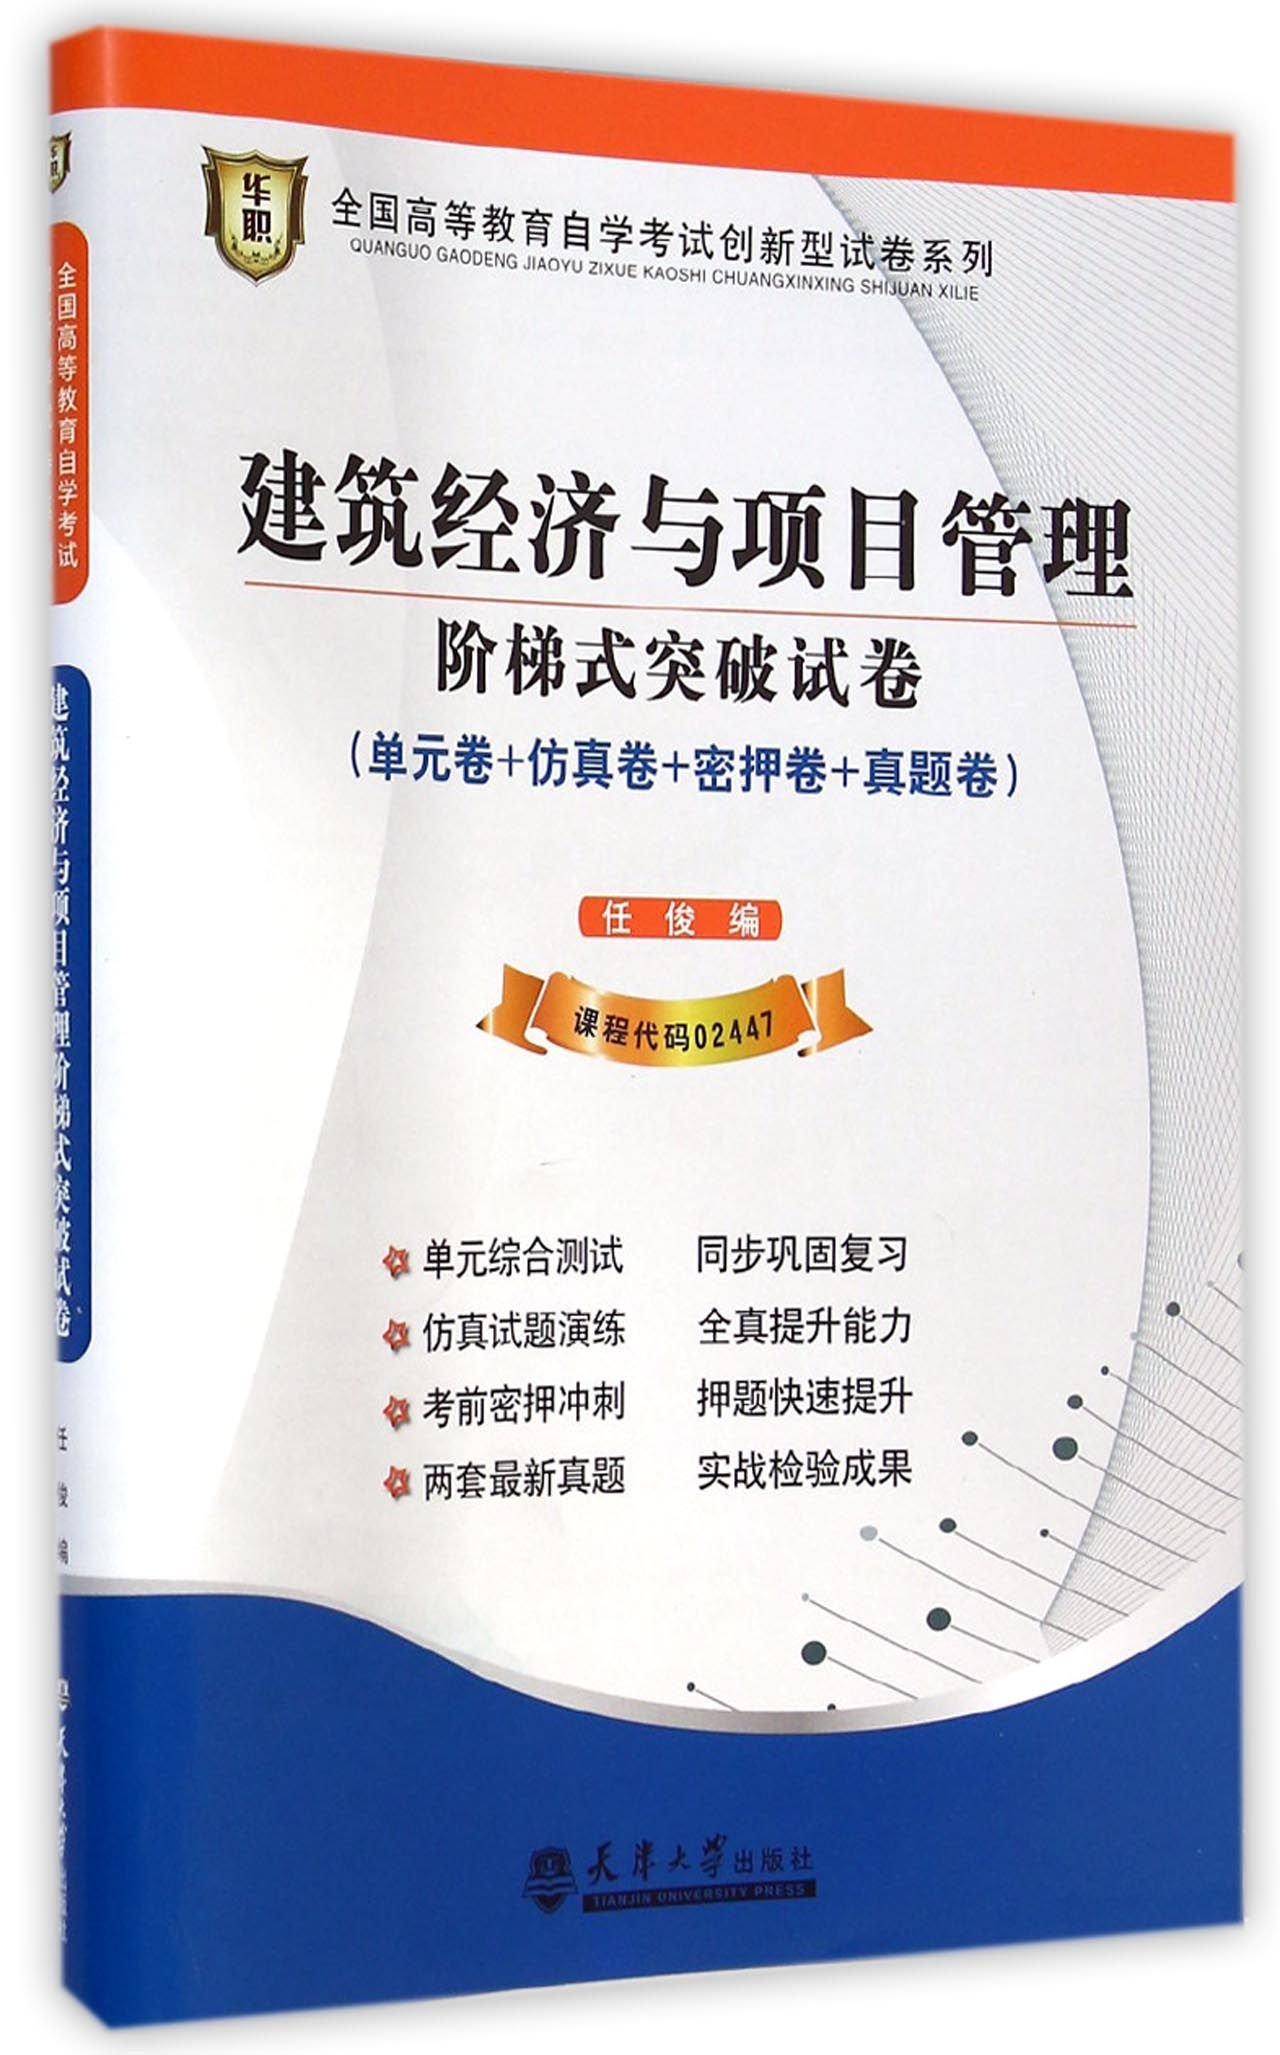 Download China 2015 National Higher Vocational Education innovative self-examination papers series (undergraduate) Construction Economics and project management ladder breakthrough papers (Bonus Guide)(Chinese Edition) pdf